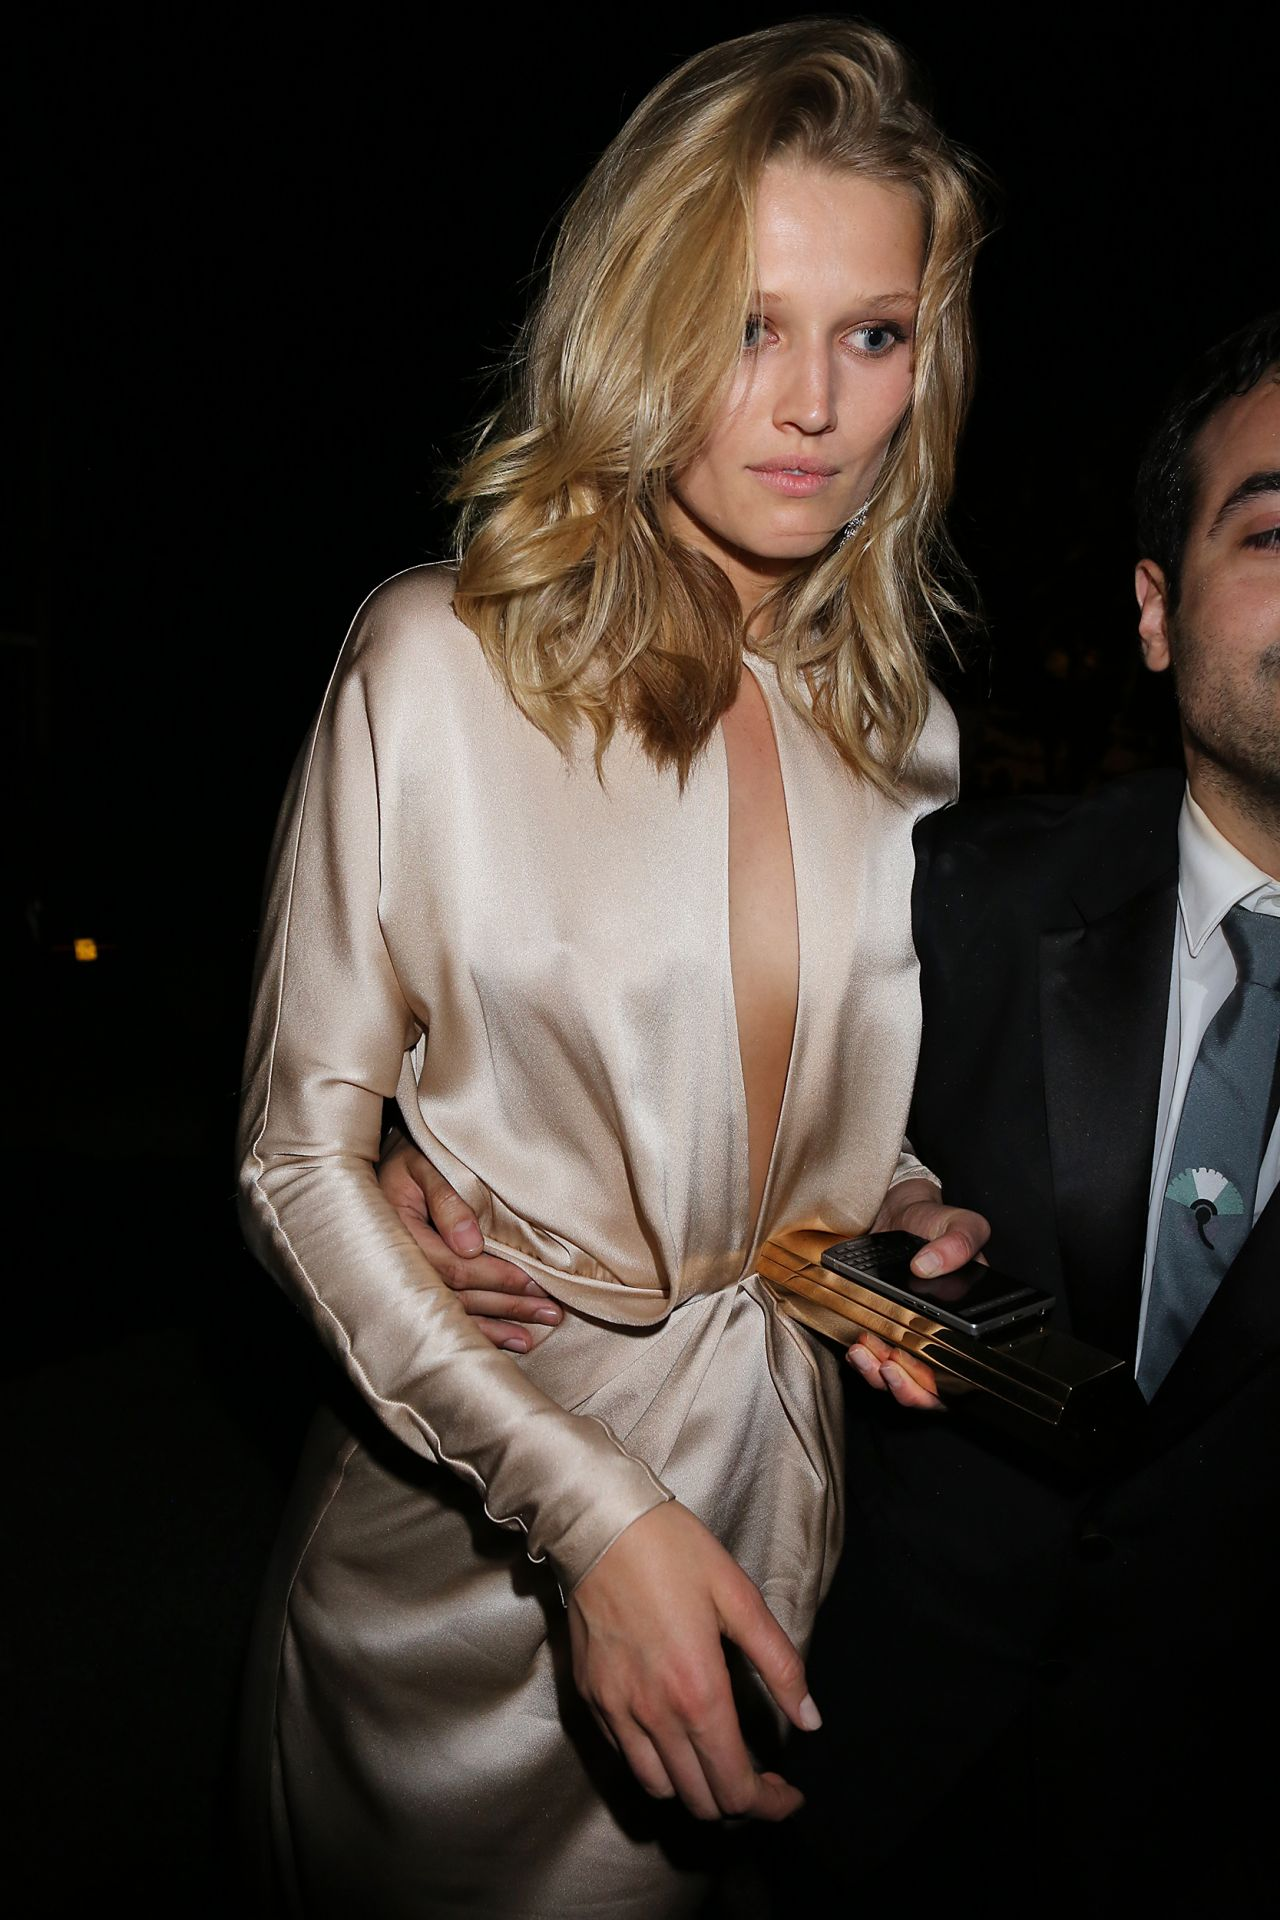 Toni garrn leaving chopard party in cannes may 2015